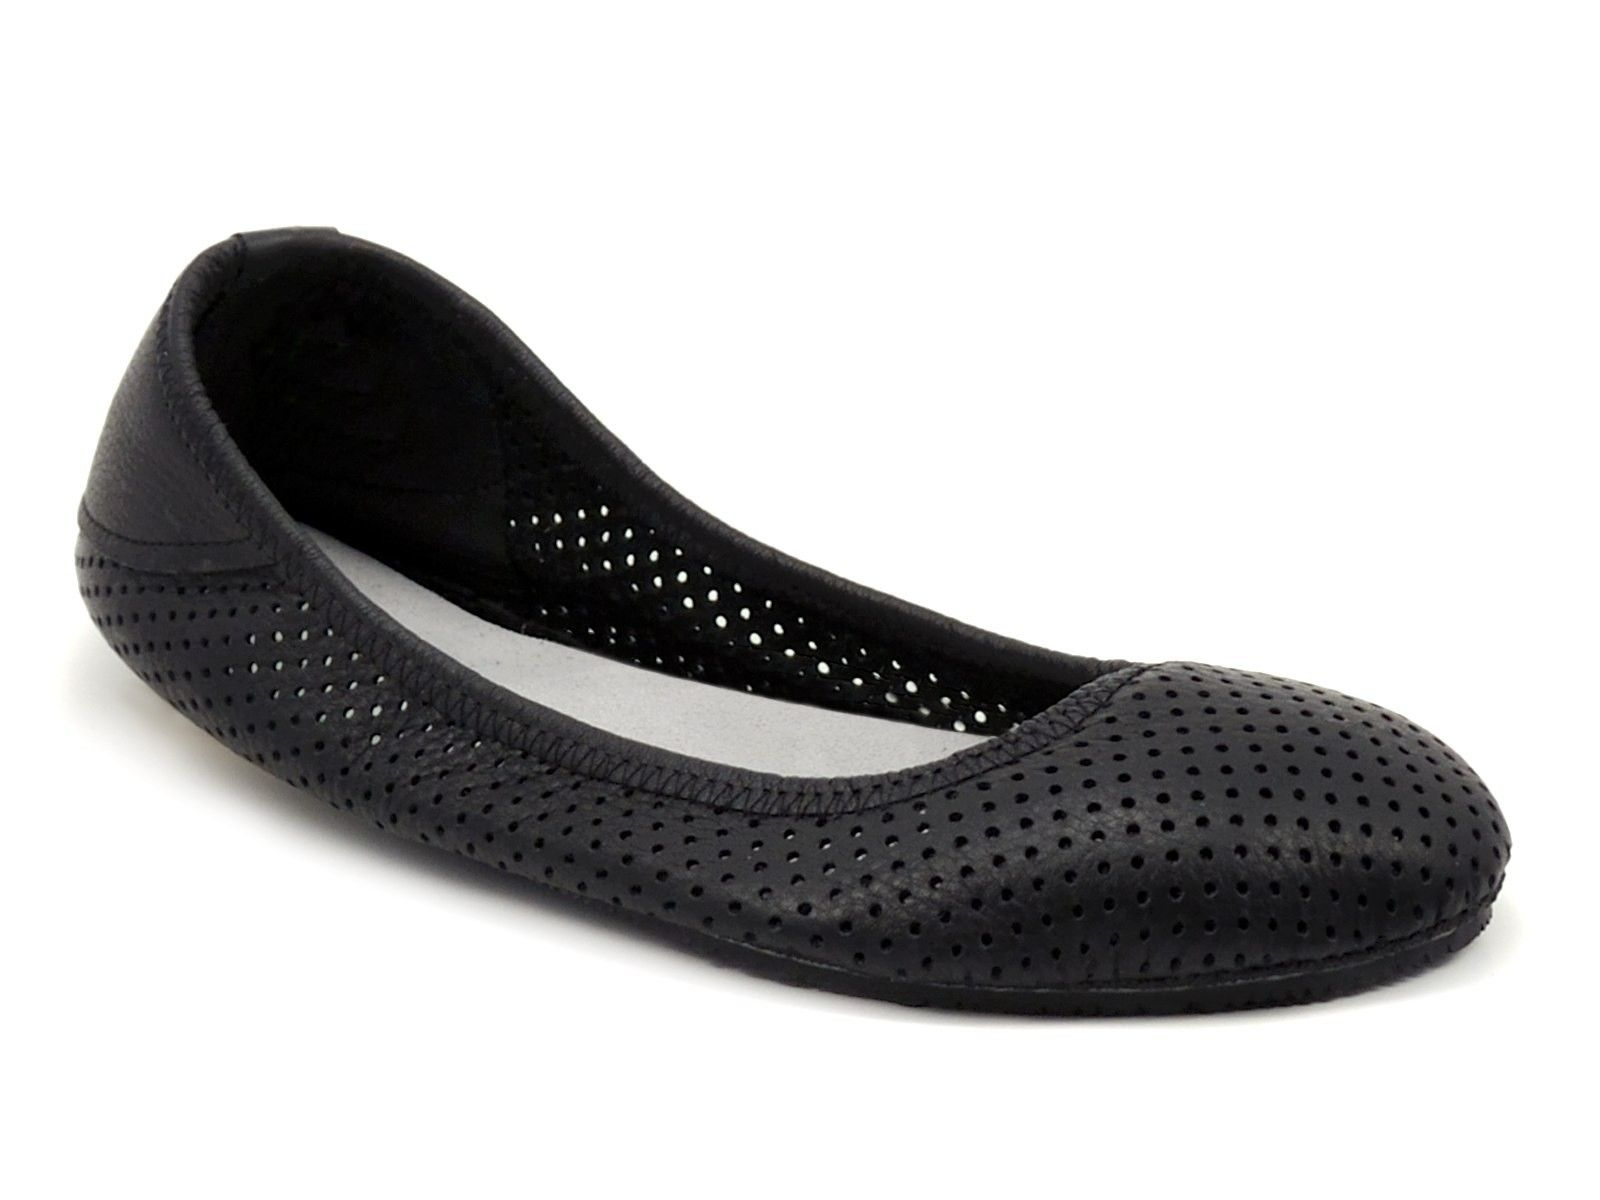 a93c9dacdf73 Adult Ballerine Flat - LITE Black. The most comfortable ballet flat in the  world!  softstarshoes  black  shoes  flats